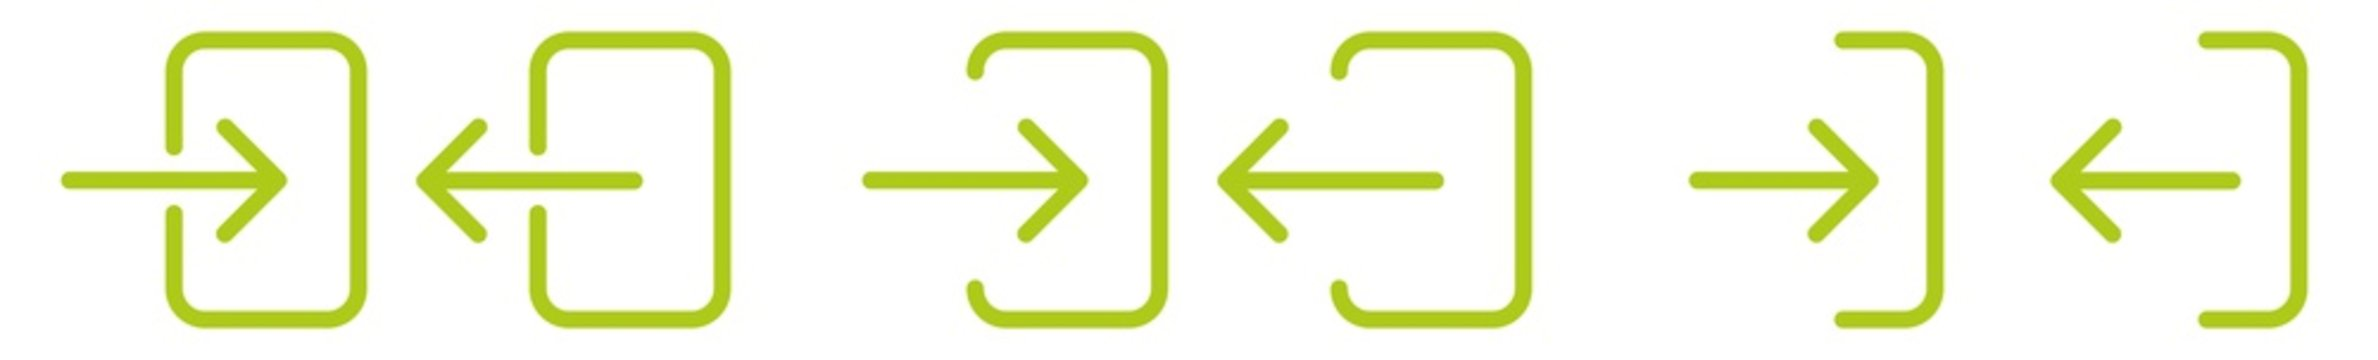 Login Logout Icon Green | User Log In Out Illustration | Account Access Symbol | Enter Exit Logo | Entrance Entry Sign | Isolated | Variations